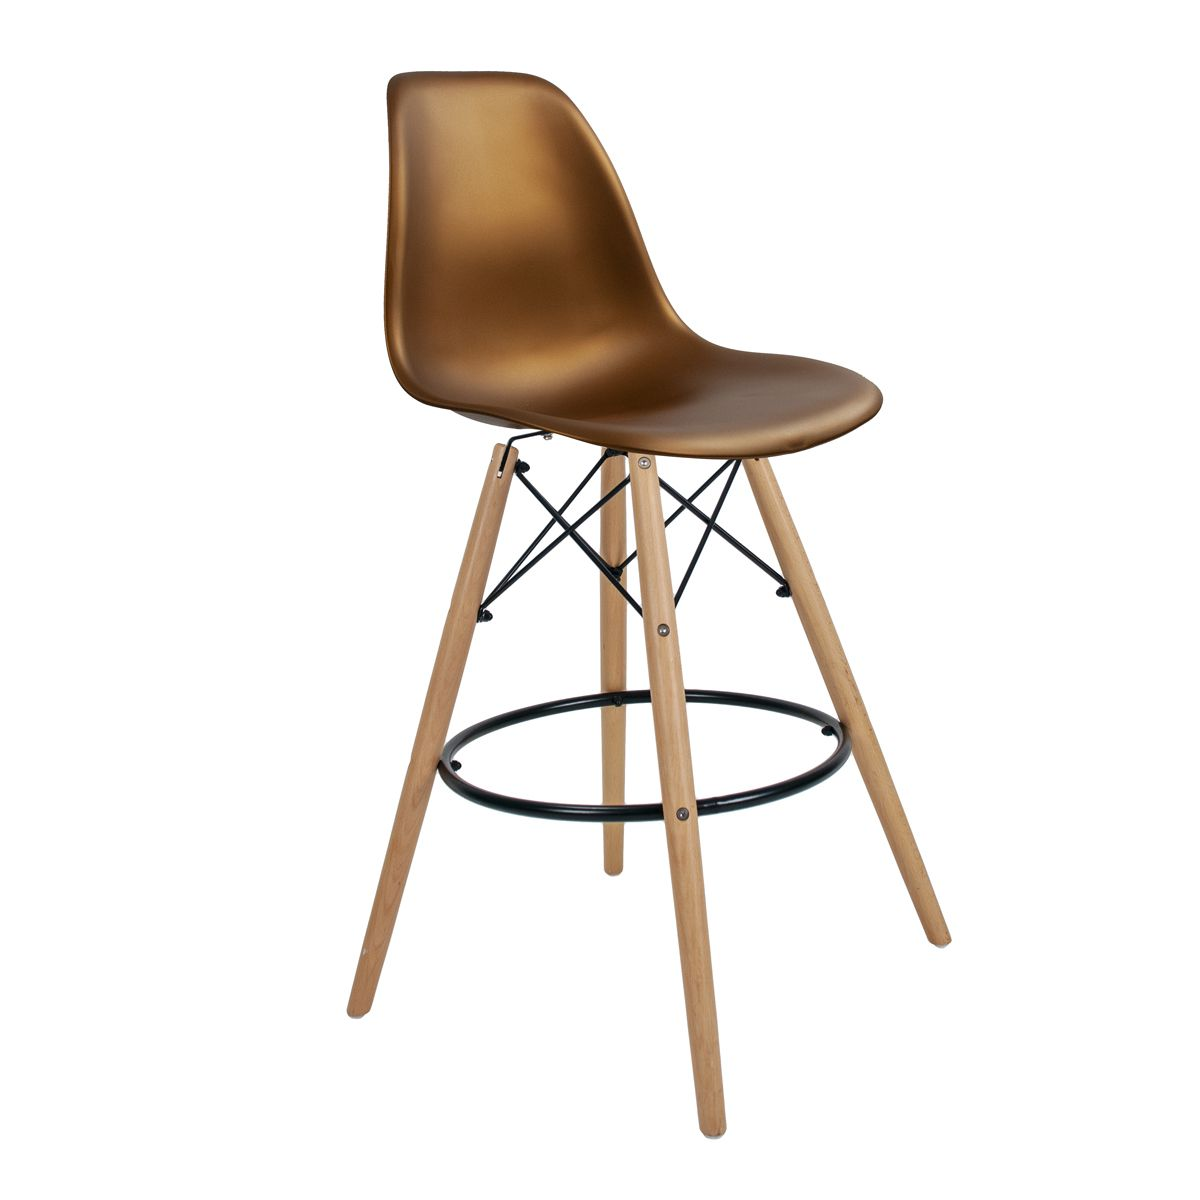 Banqueta Eames Bronze - Base de Madeira Natural